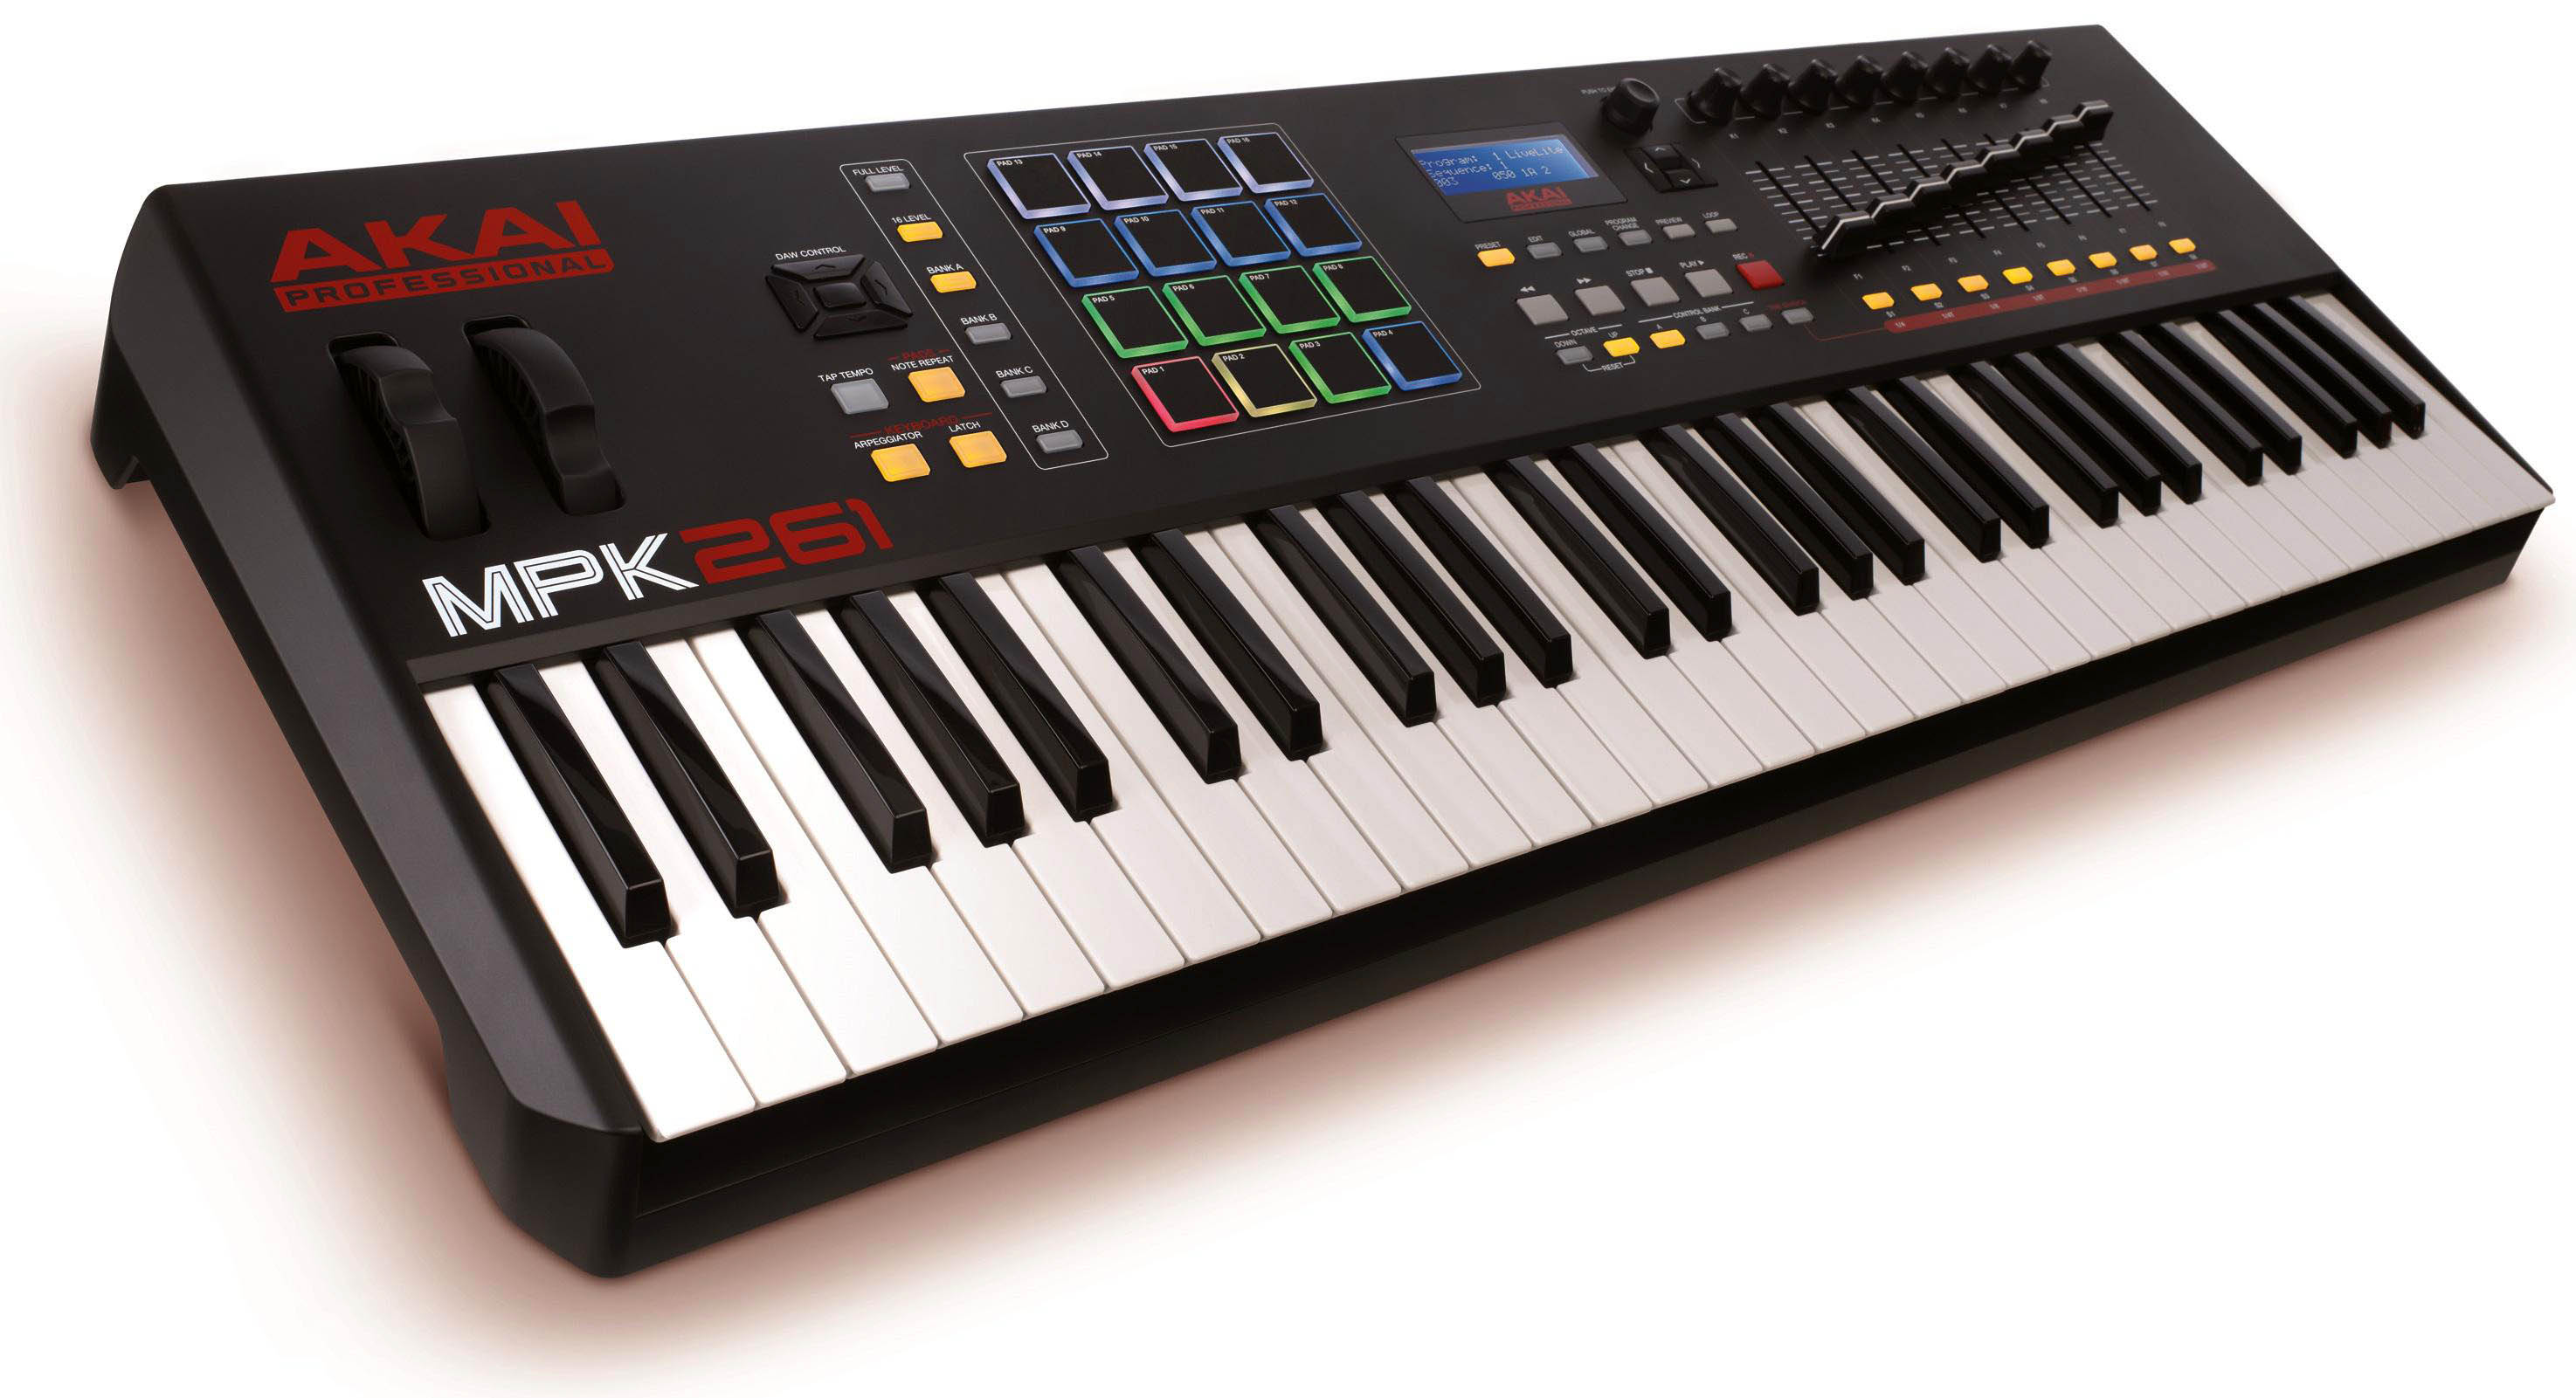 AKAI MPK 261 61-key MIDI Controller with Drum Pads $499